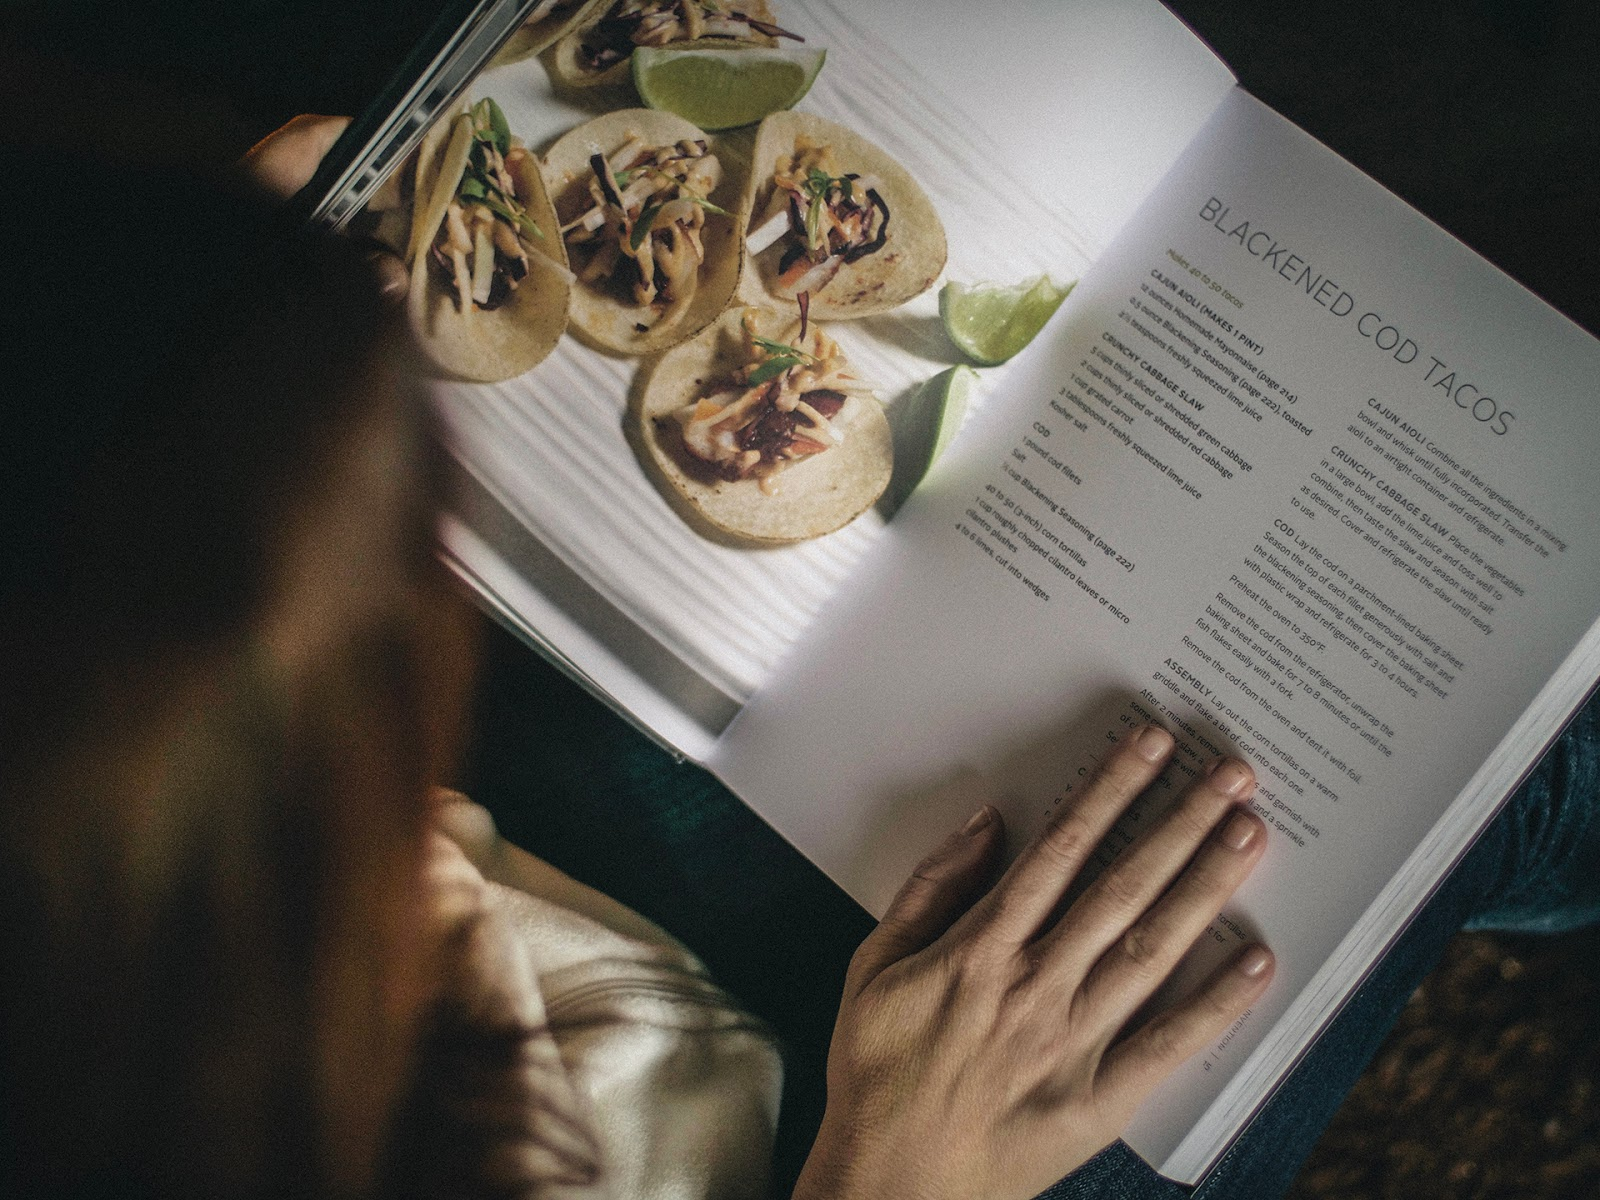 Local Food Rocks: Beginnings by ONTHEMARC recipe for blacked cod tacos